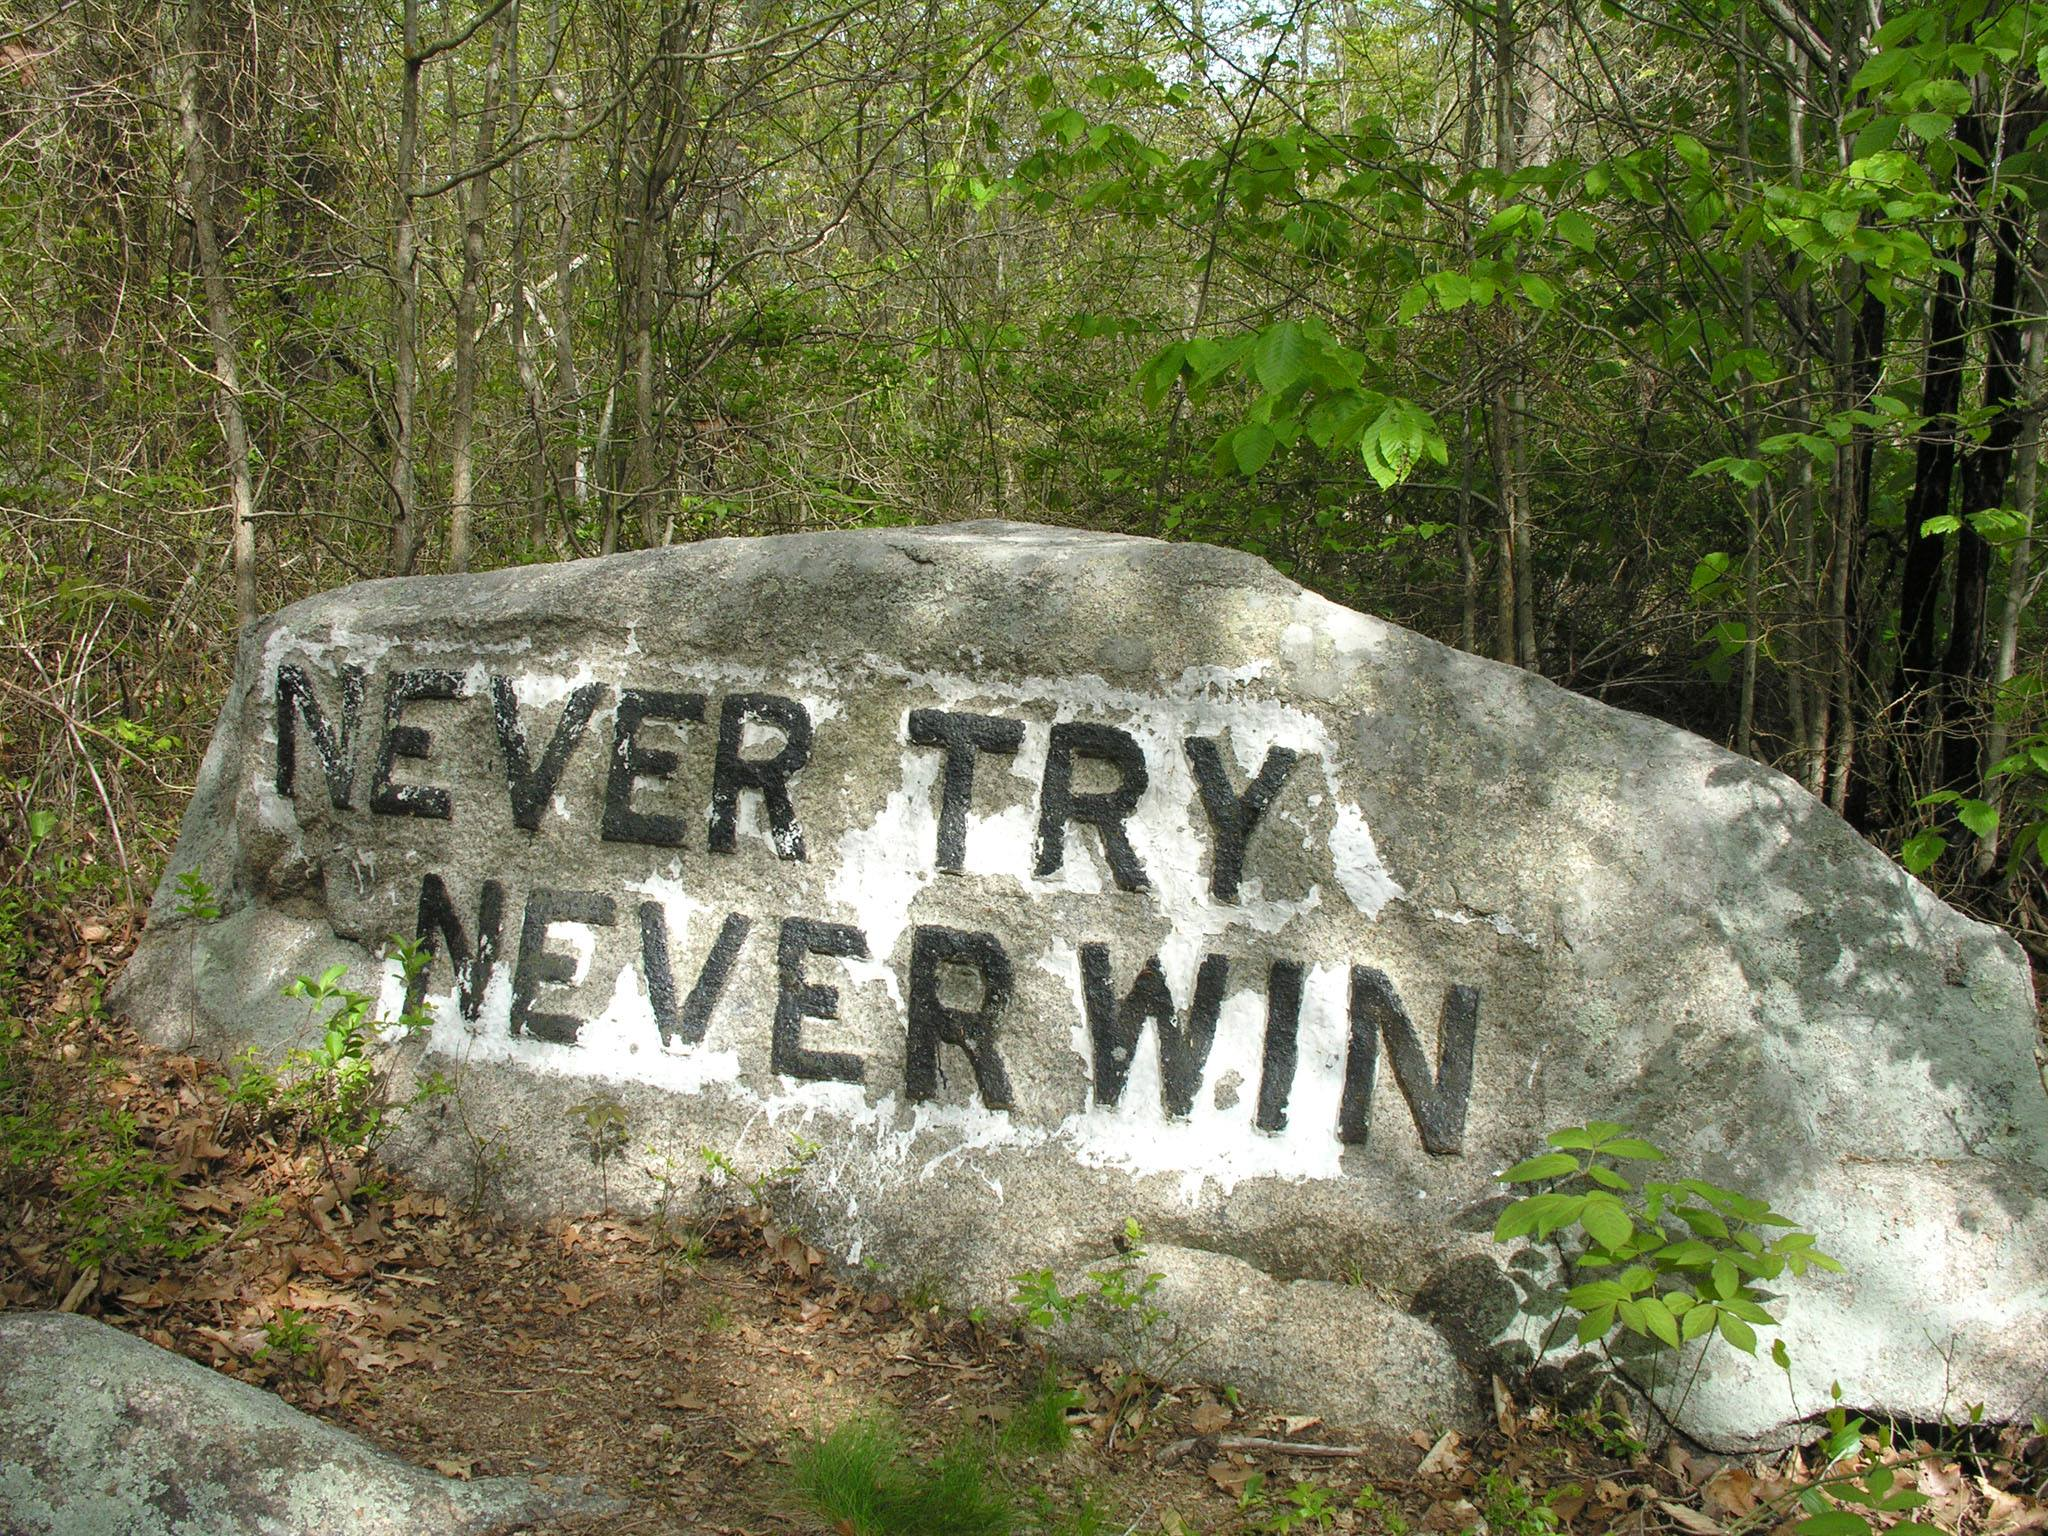 [Image] Inspirational Rock